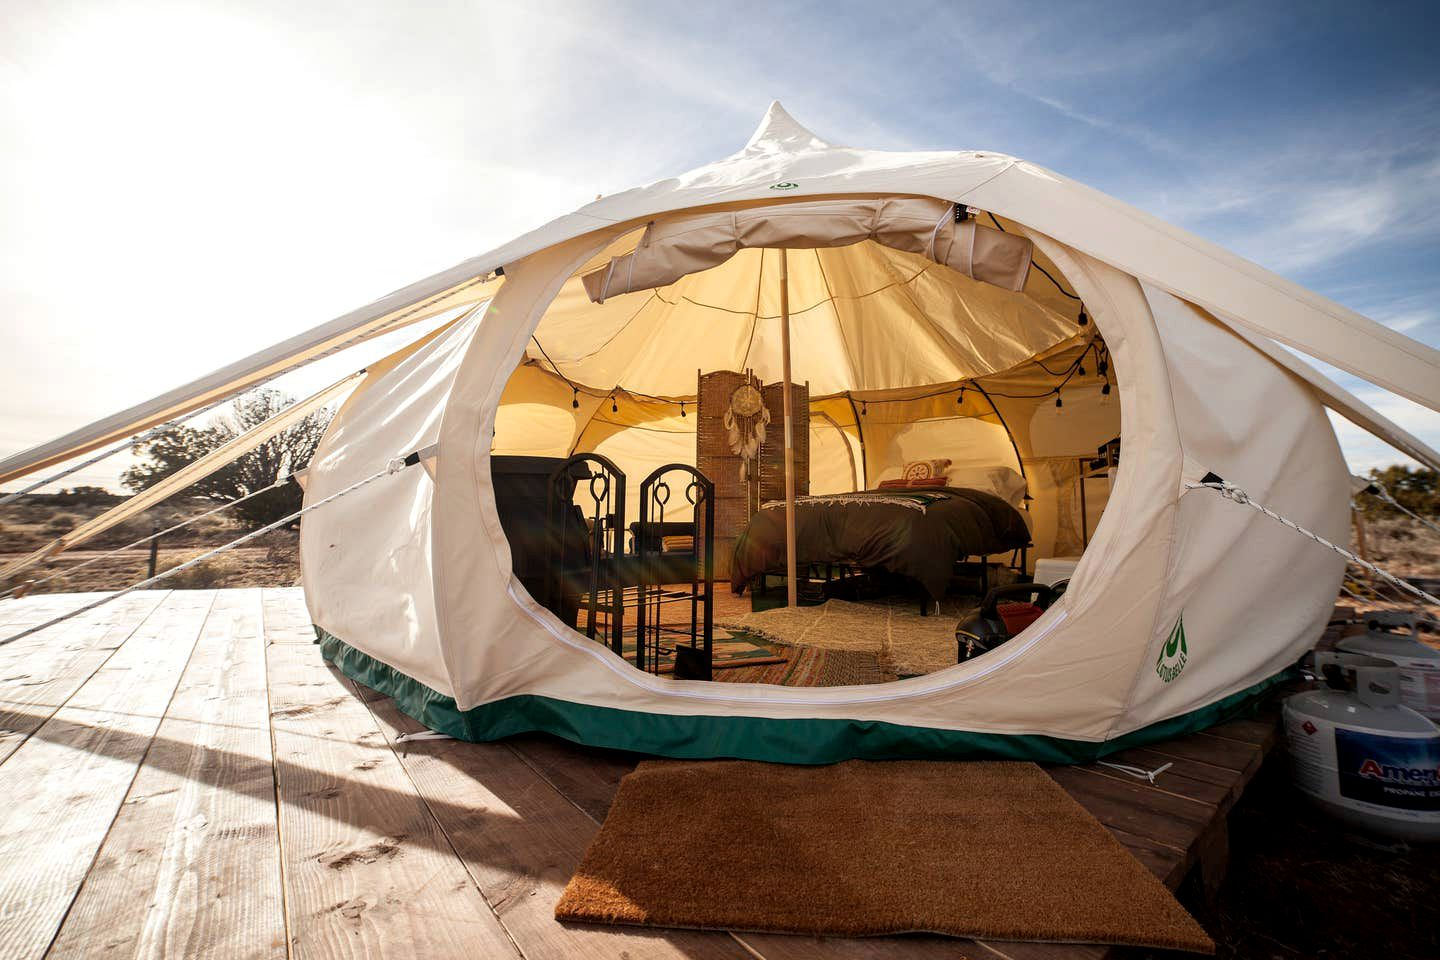 Belle Yurt rental for the best glamping in Arizona.